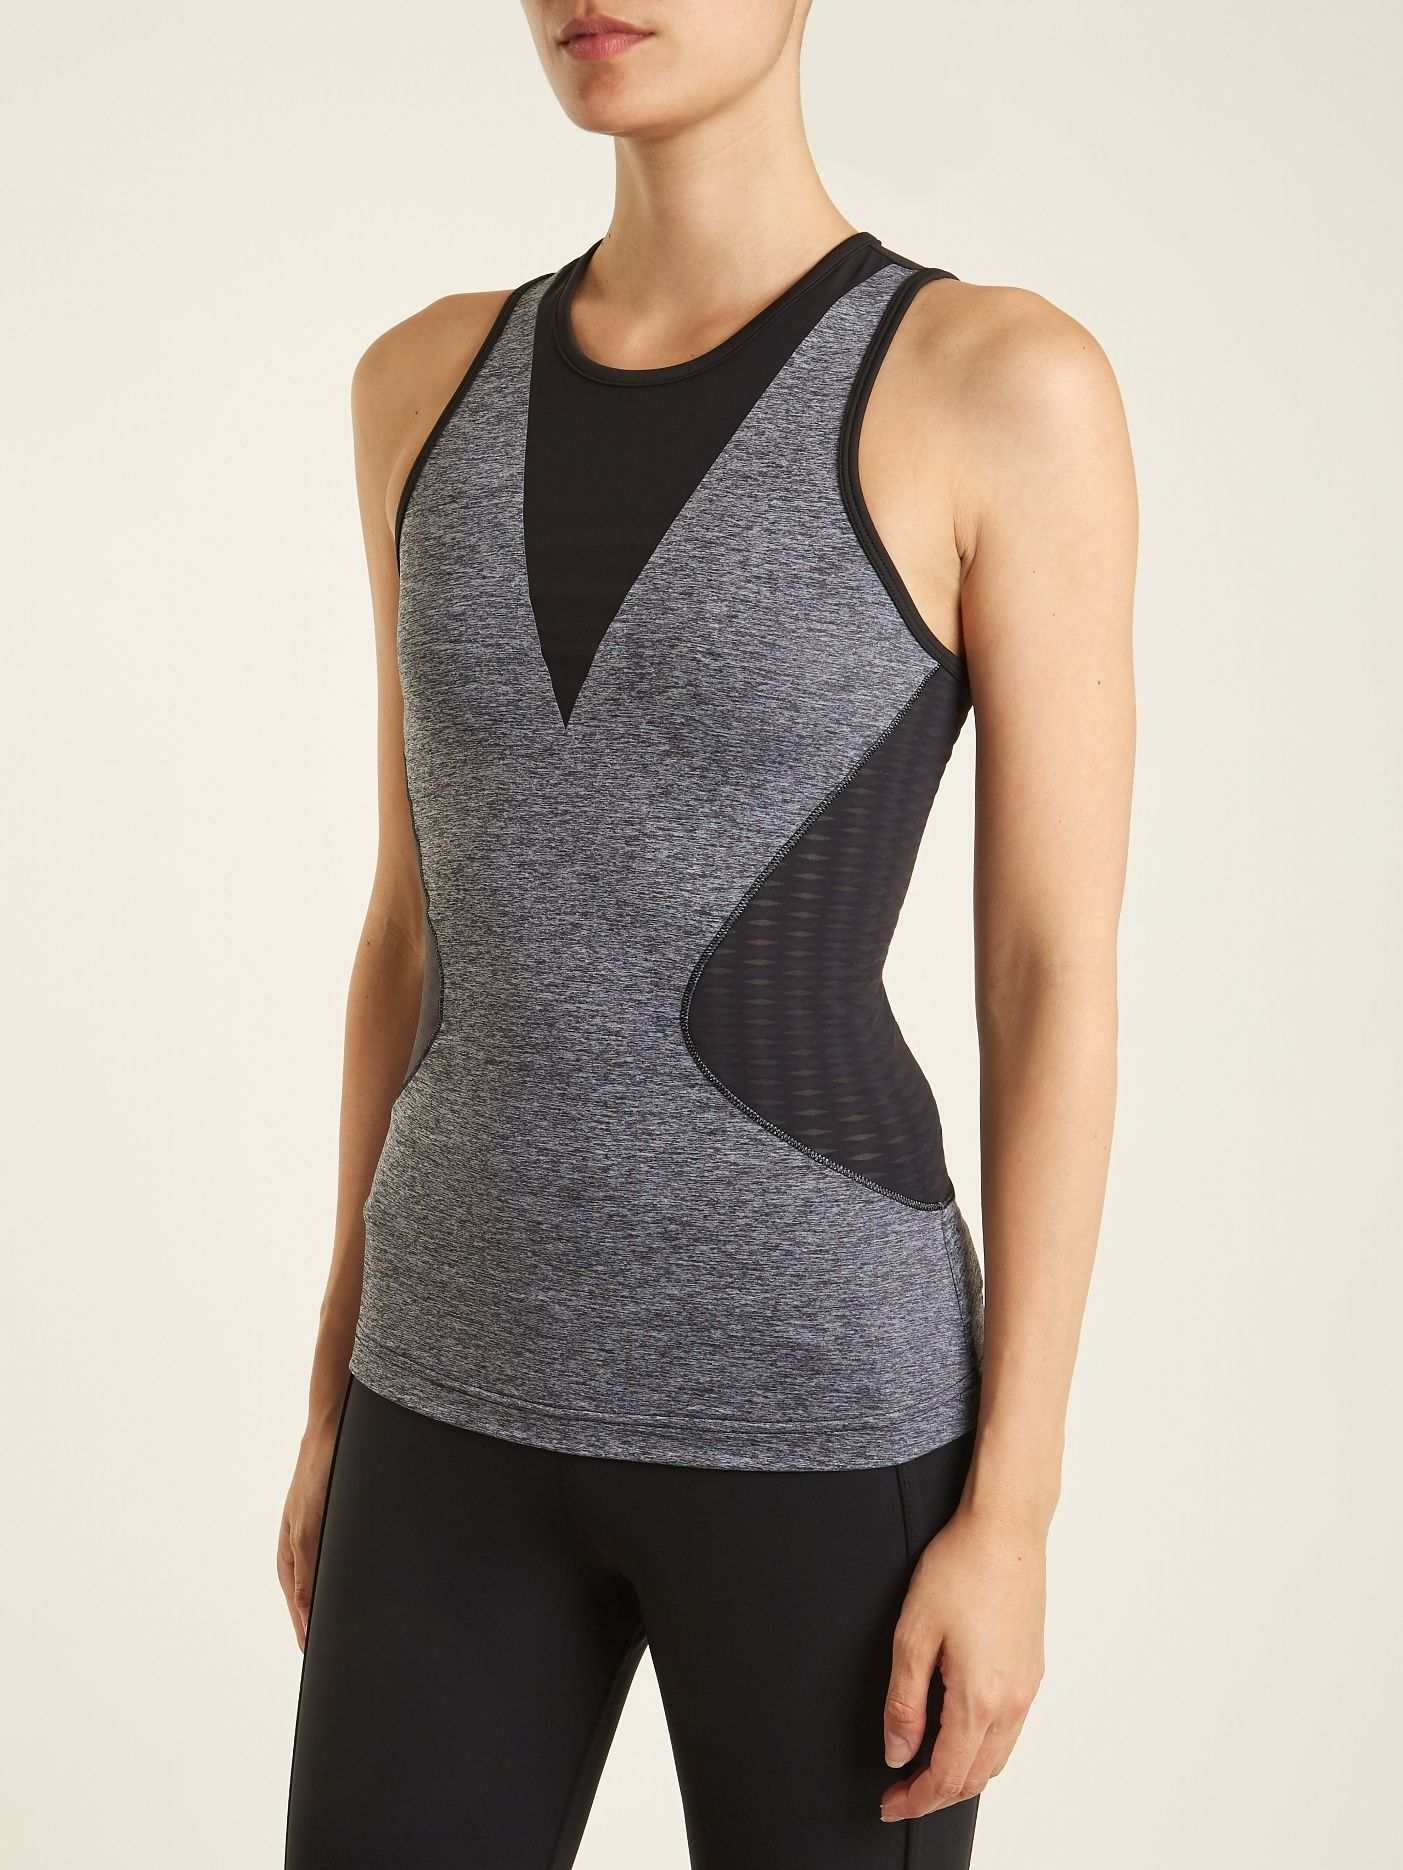 newest d6d3a 3ea32 Click here to buy Adidas By Stella McCartney Training mesh-insert  performance tank top at MATCHESFASHION.COM